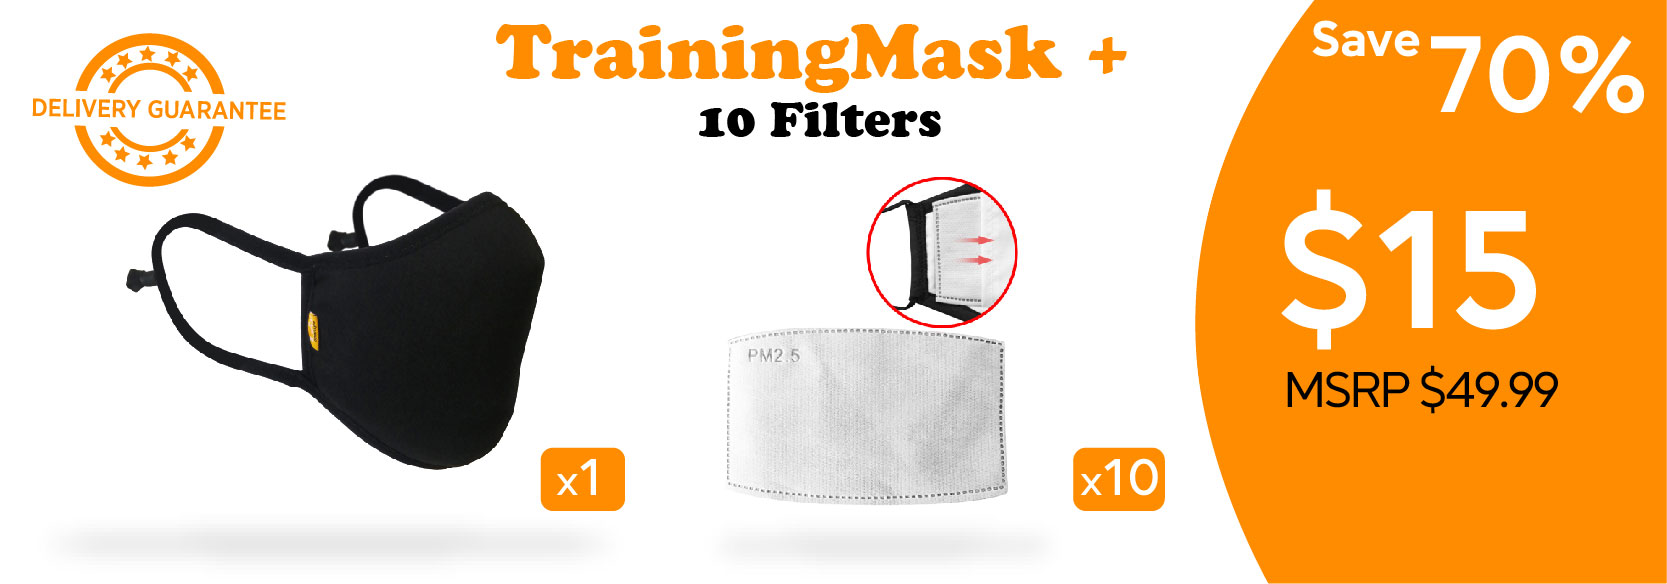 perk posters_Training Mask + 10 filters